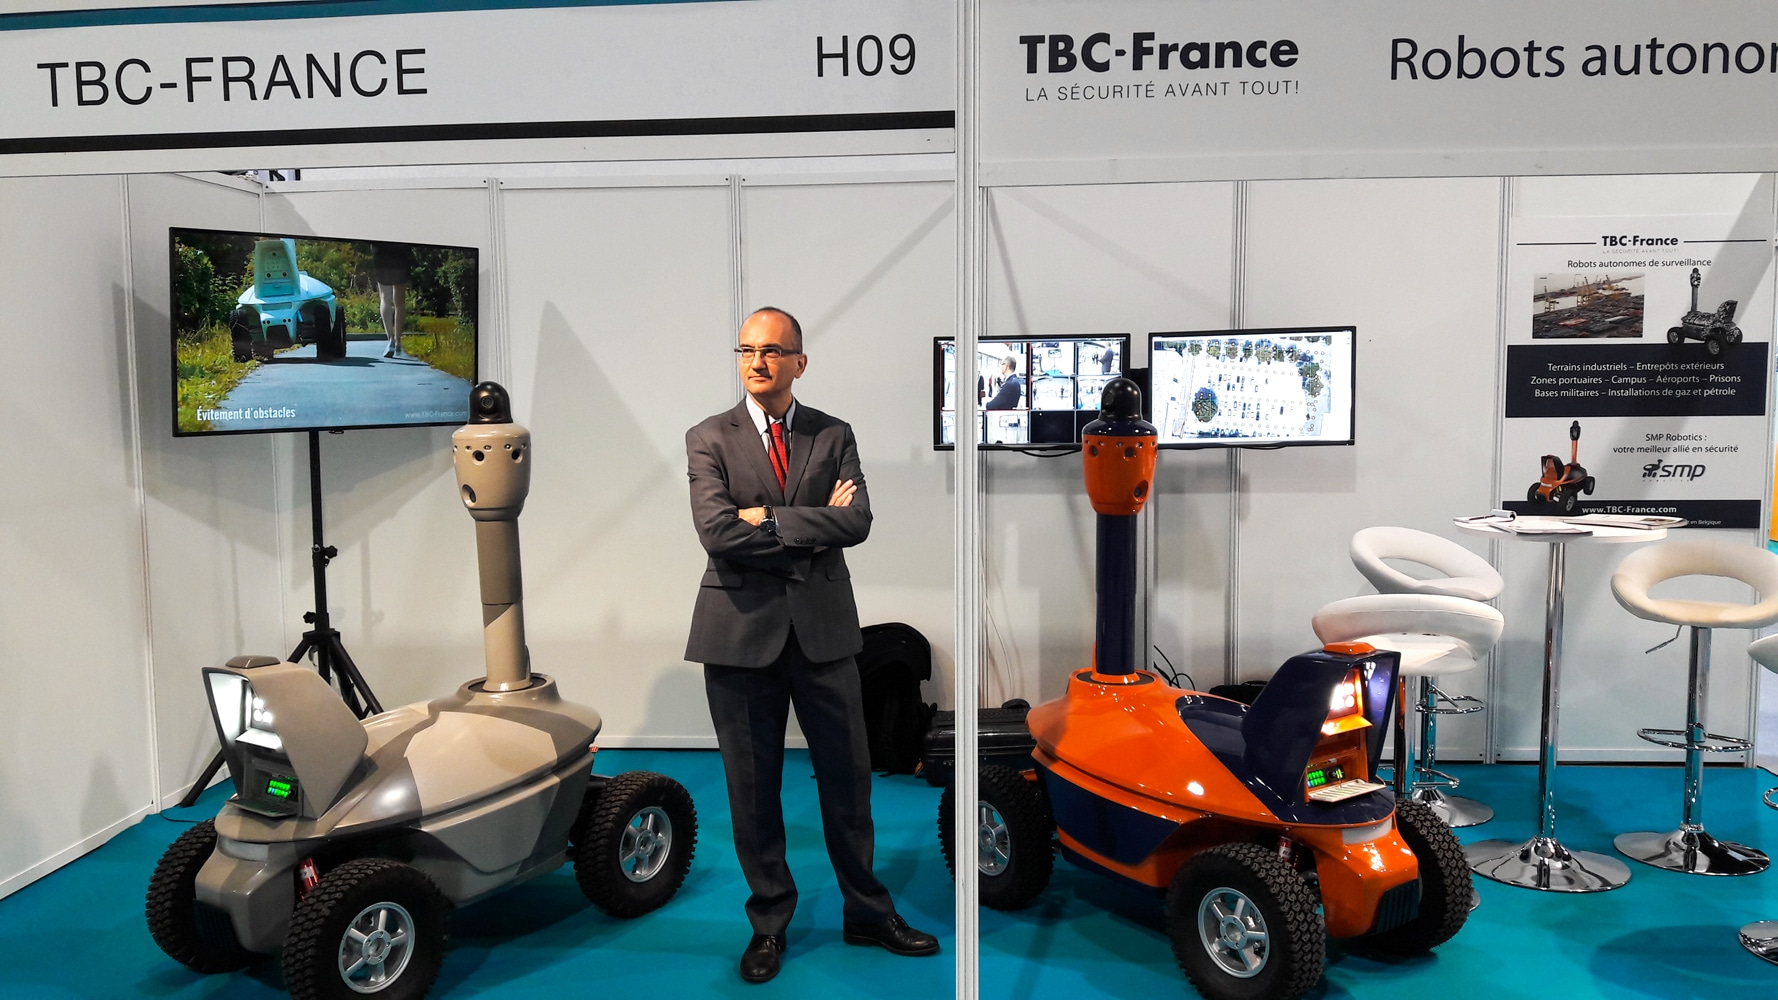 Robots in France